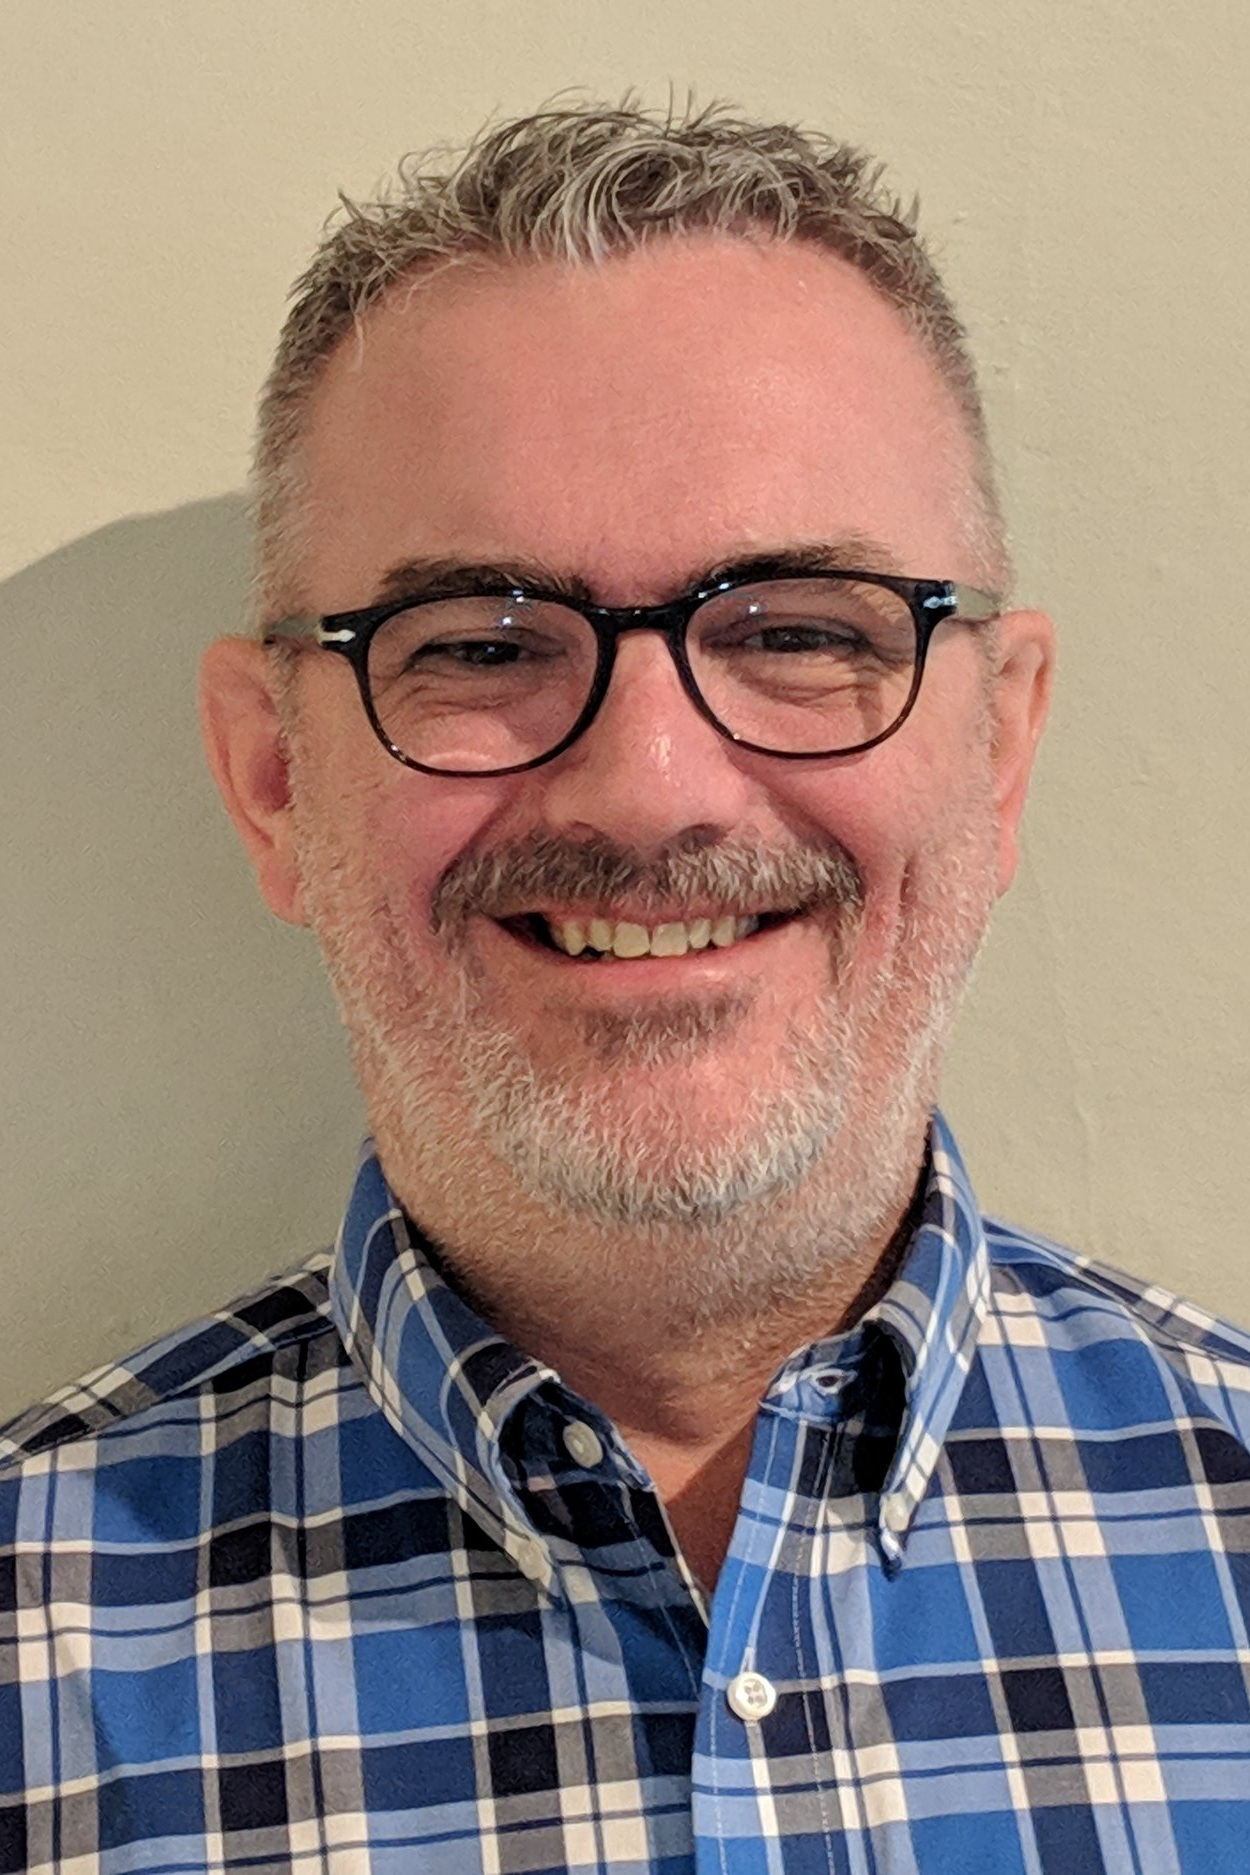 INformation security officer - Phill MoranTechnology executive with more than 25 years of comprehensive experience in global program, product and technical services management